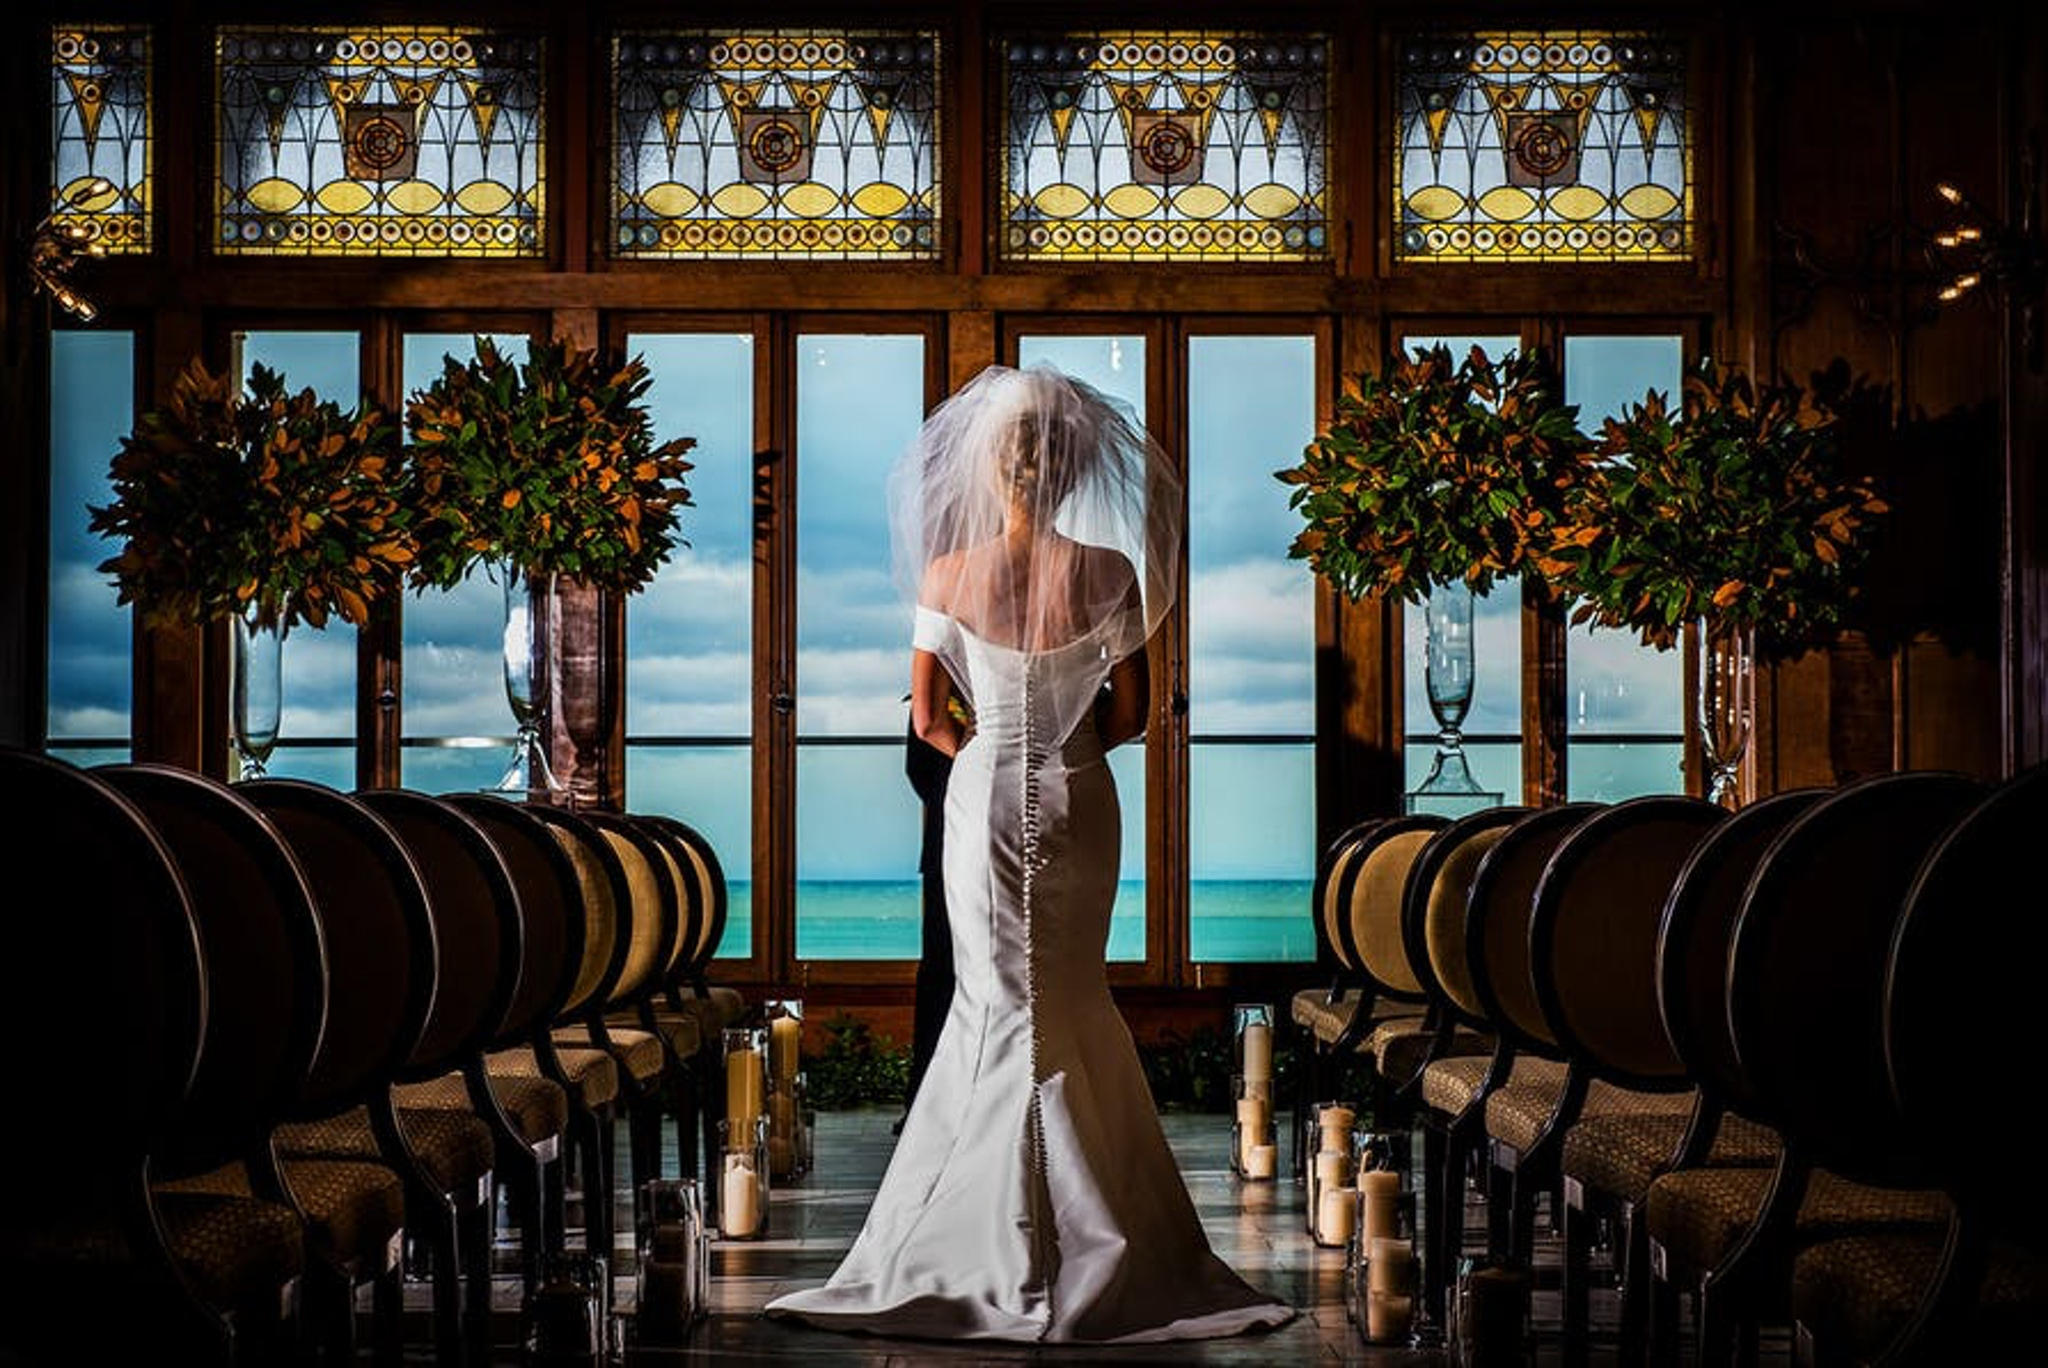 a bride walks down the aisle going towards huge windows looking over a wonderful view